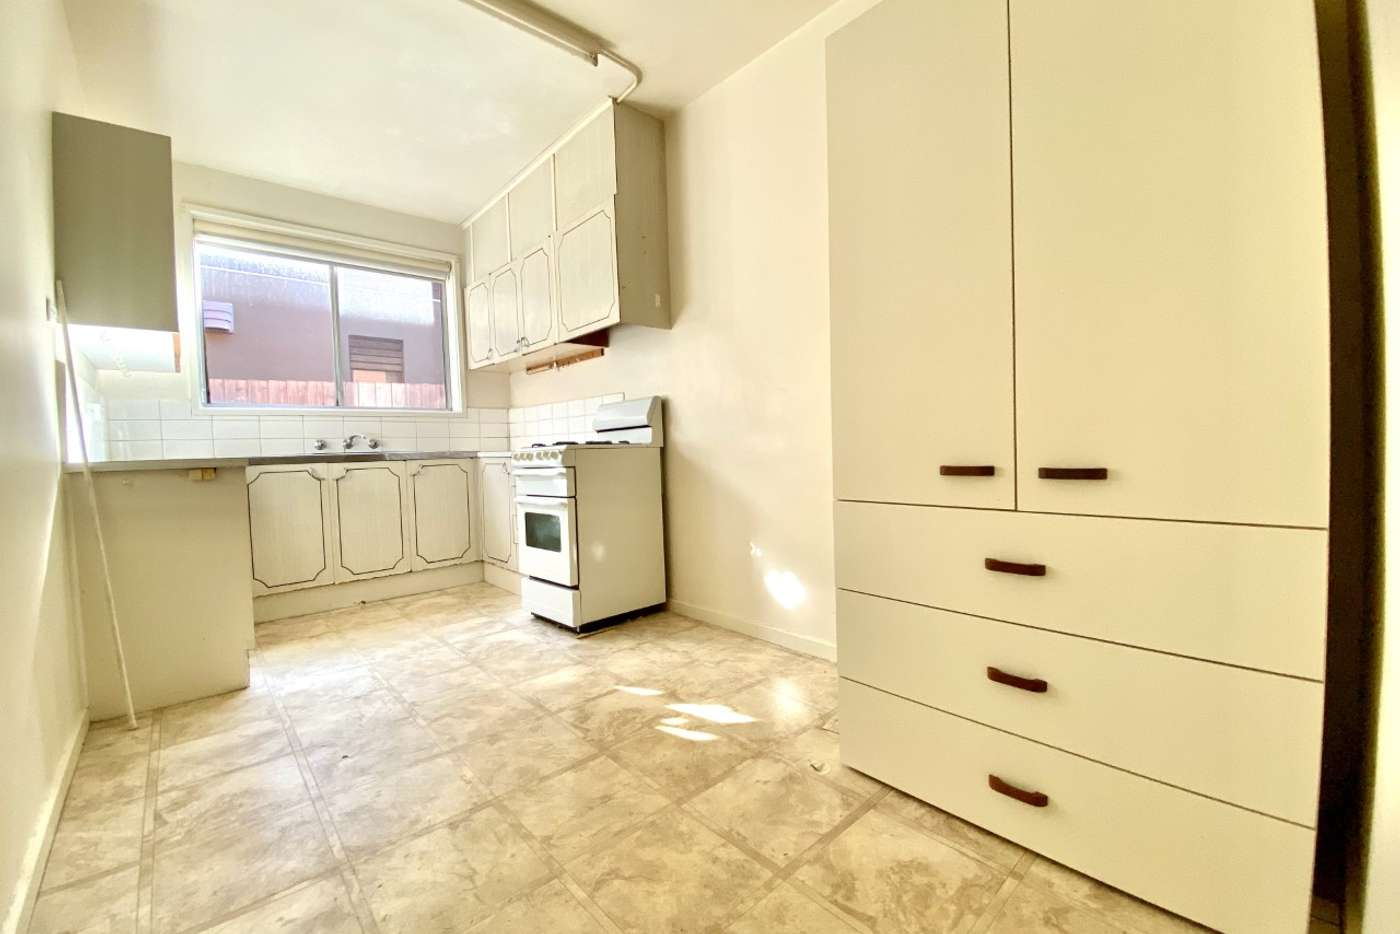 Main view of Homely apartment listing, 2/12 Cushing Avenue, Bentleigh VIC 3204